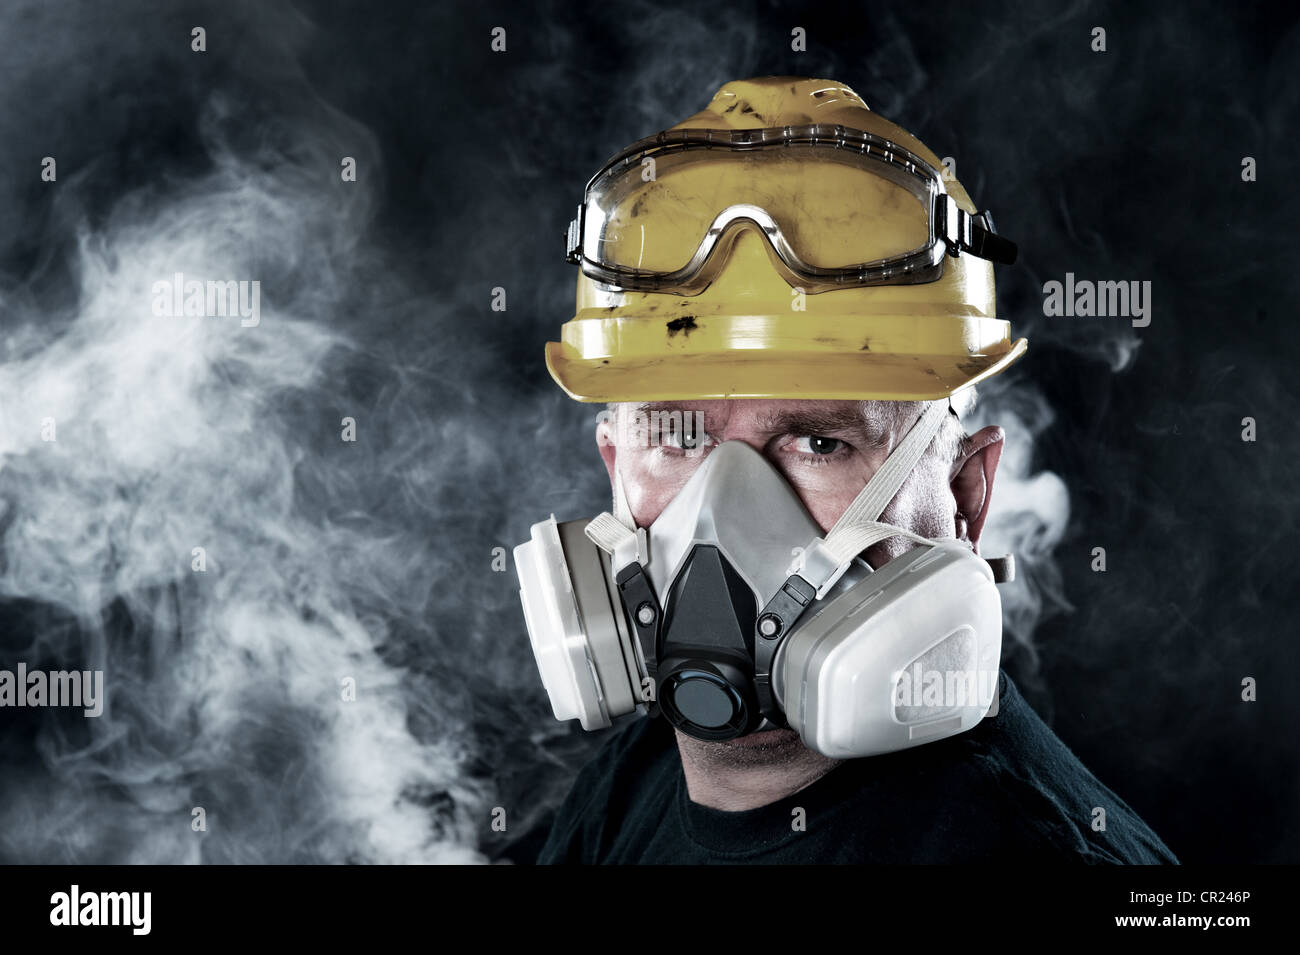 A rescue worker wears a respirator in a smokey, toxic atmosphere. Image show the importance of protection readiness - Stock Image